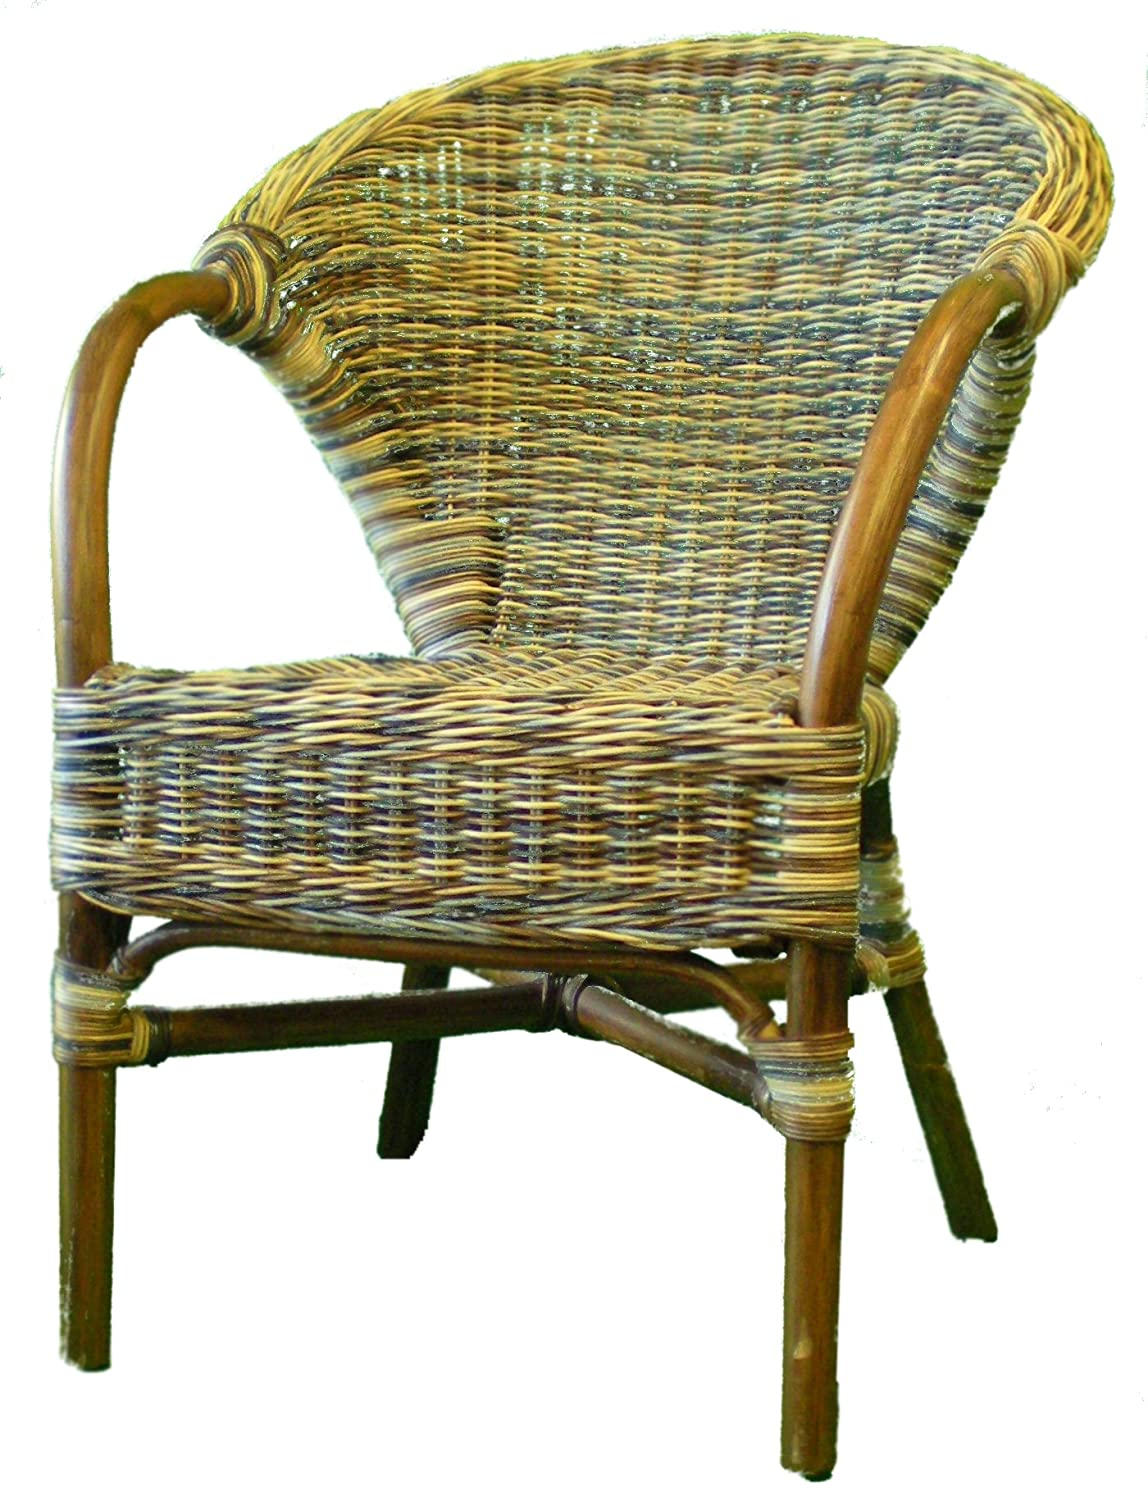 Mixed Colour Wicker Chair